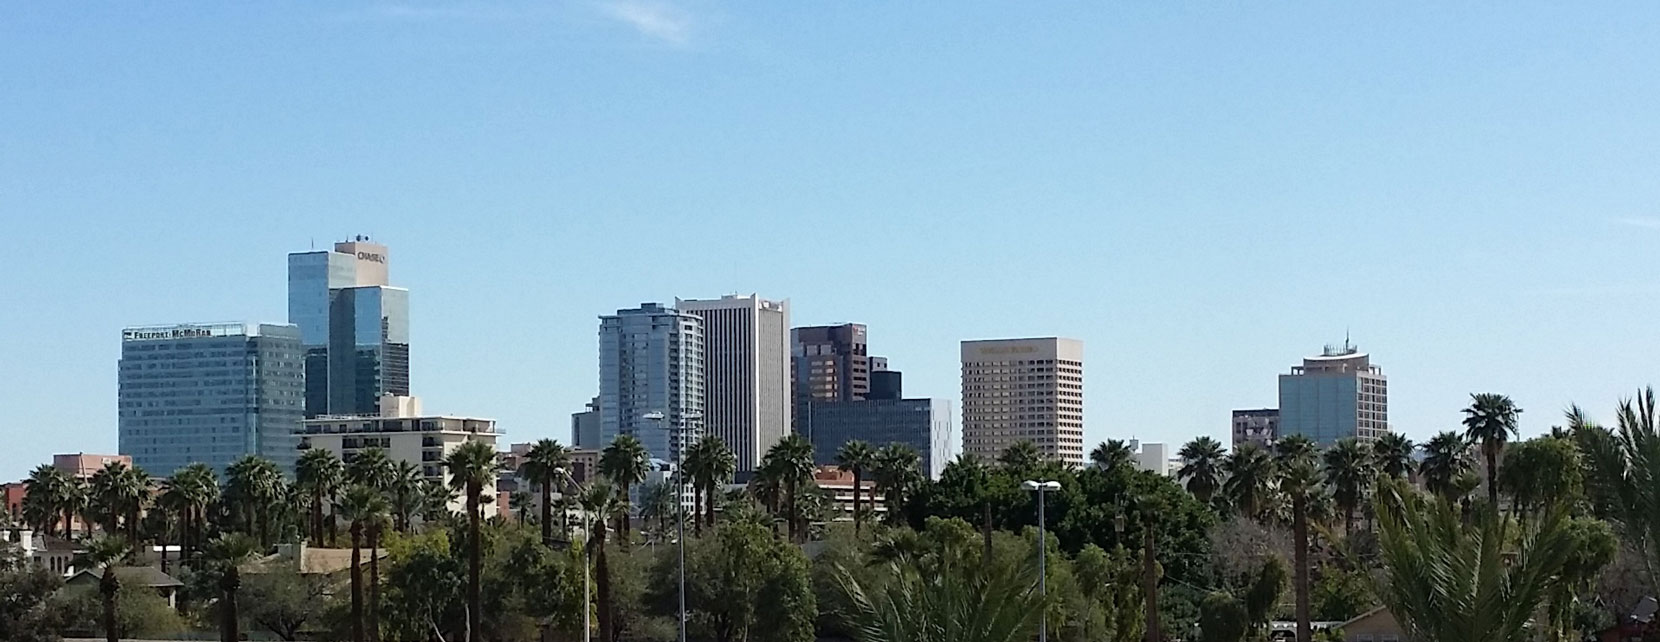 Header image of the dowtown Phoenix skyline